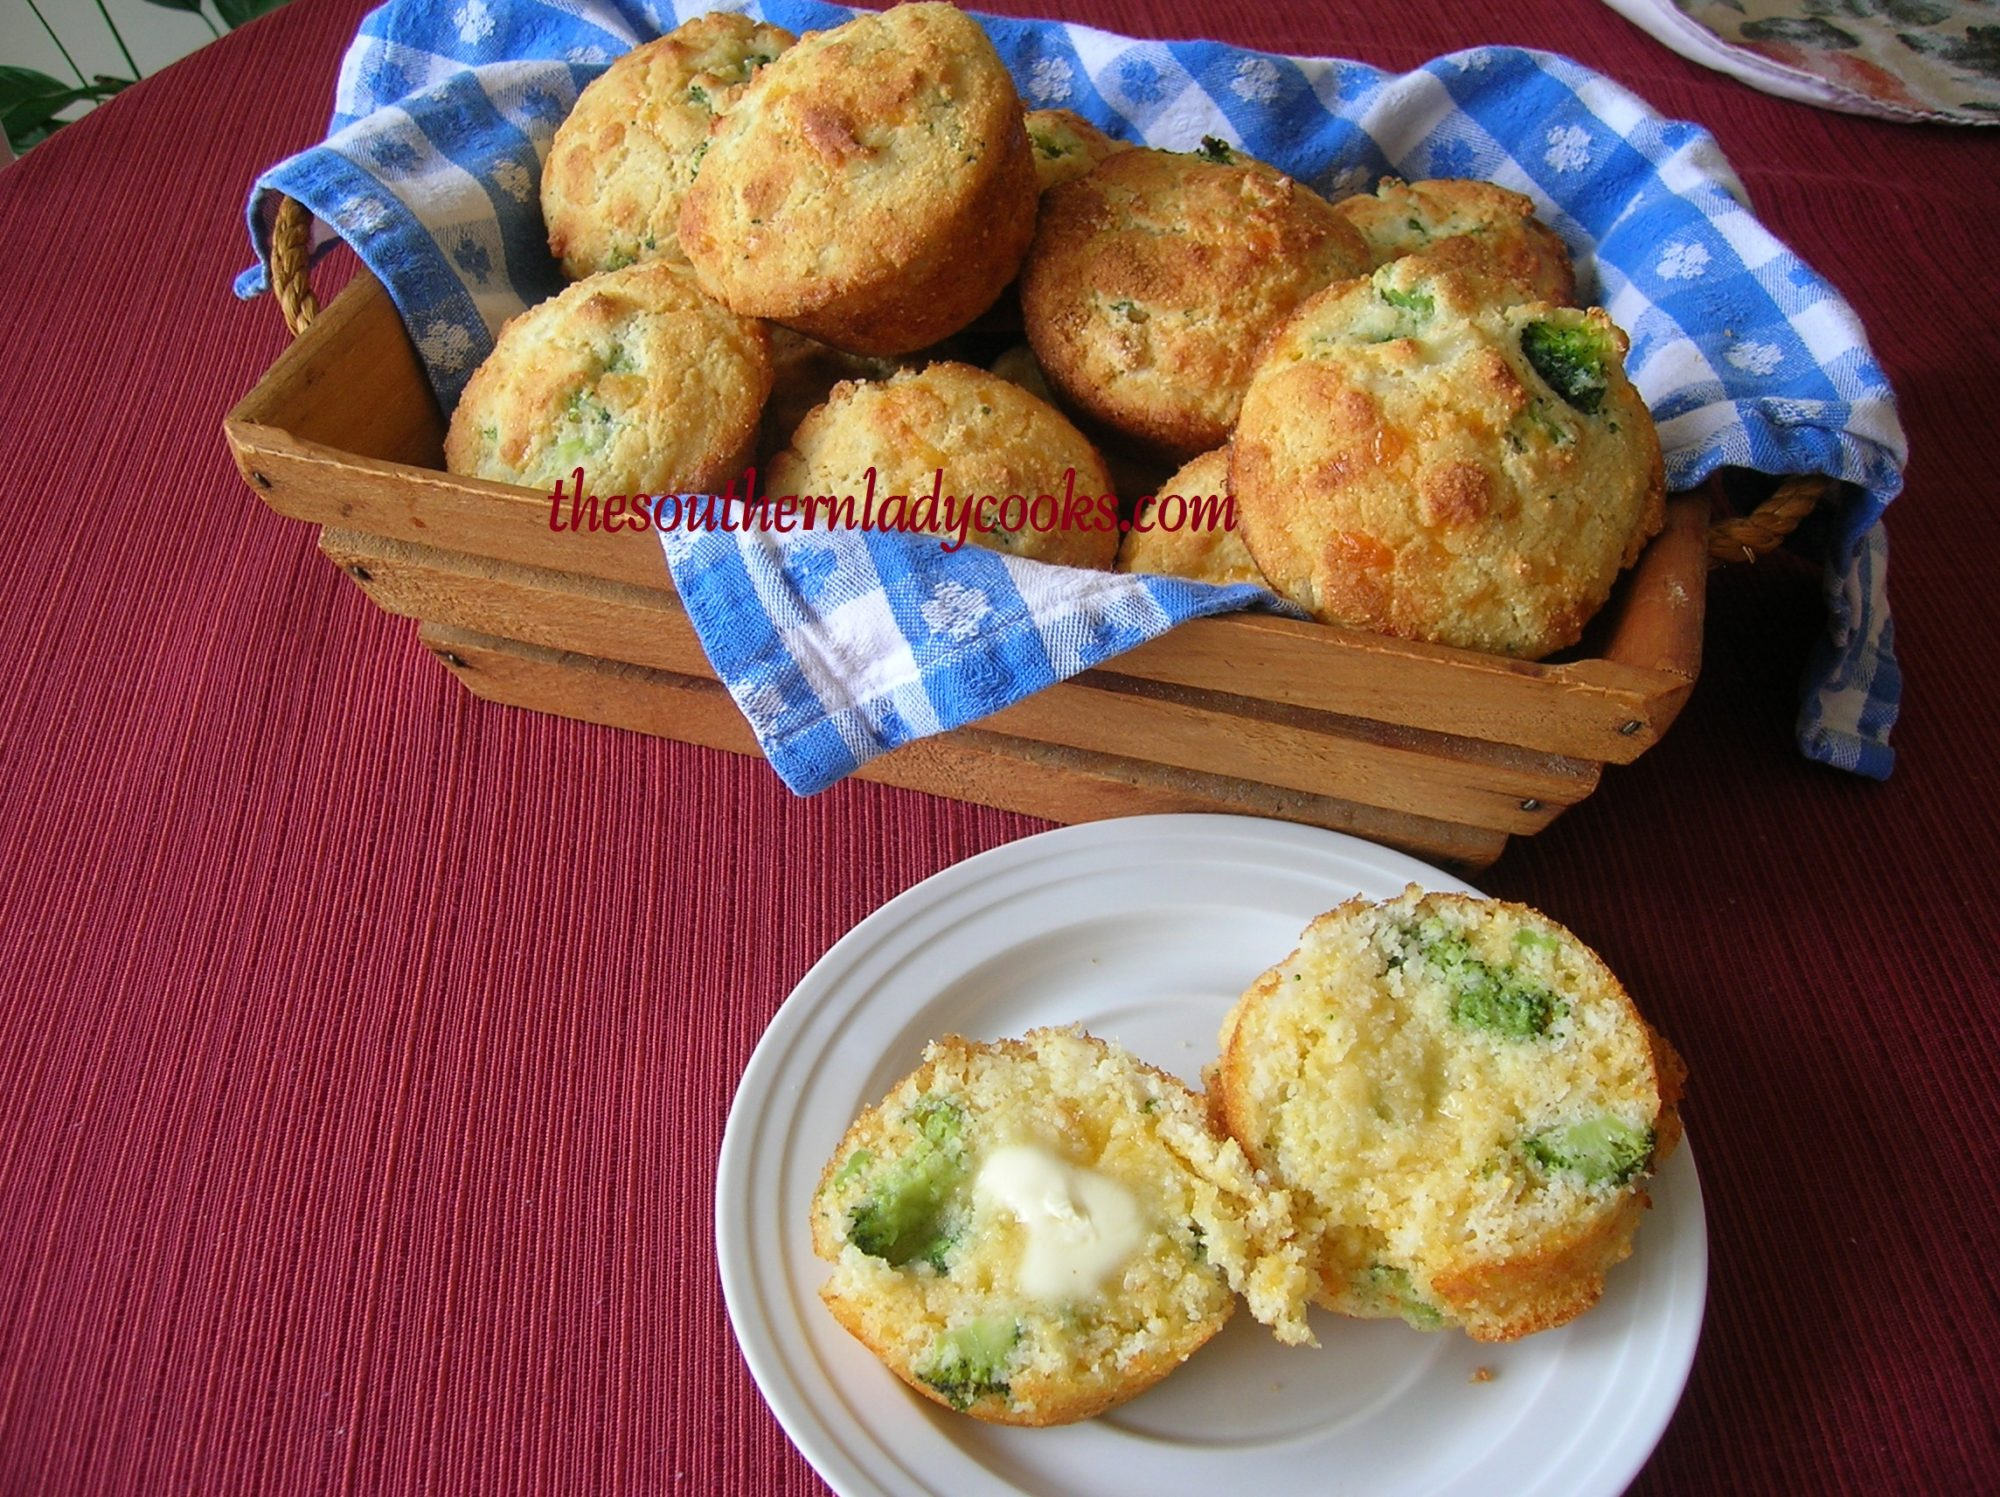 BROCCOLI CHEDDAR CORNBREAD MUFFINS - The Southern Lady Cooks